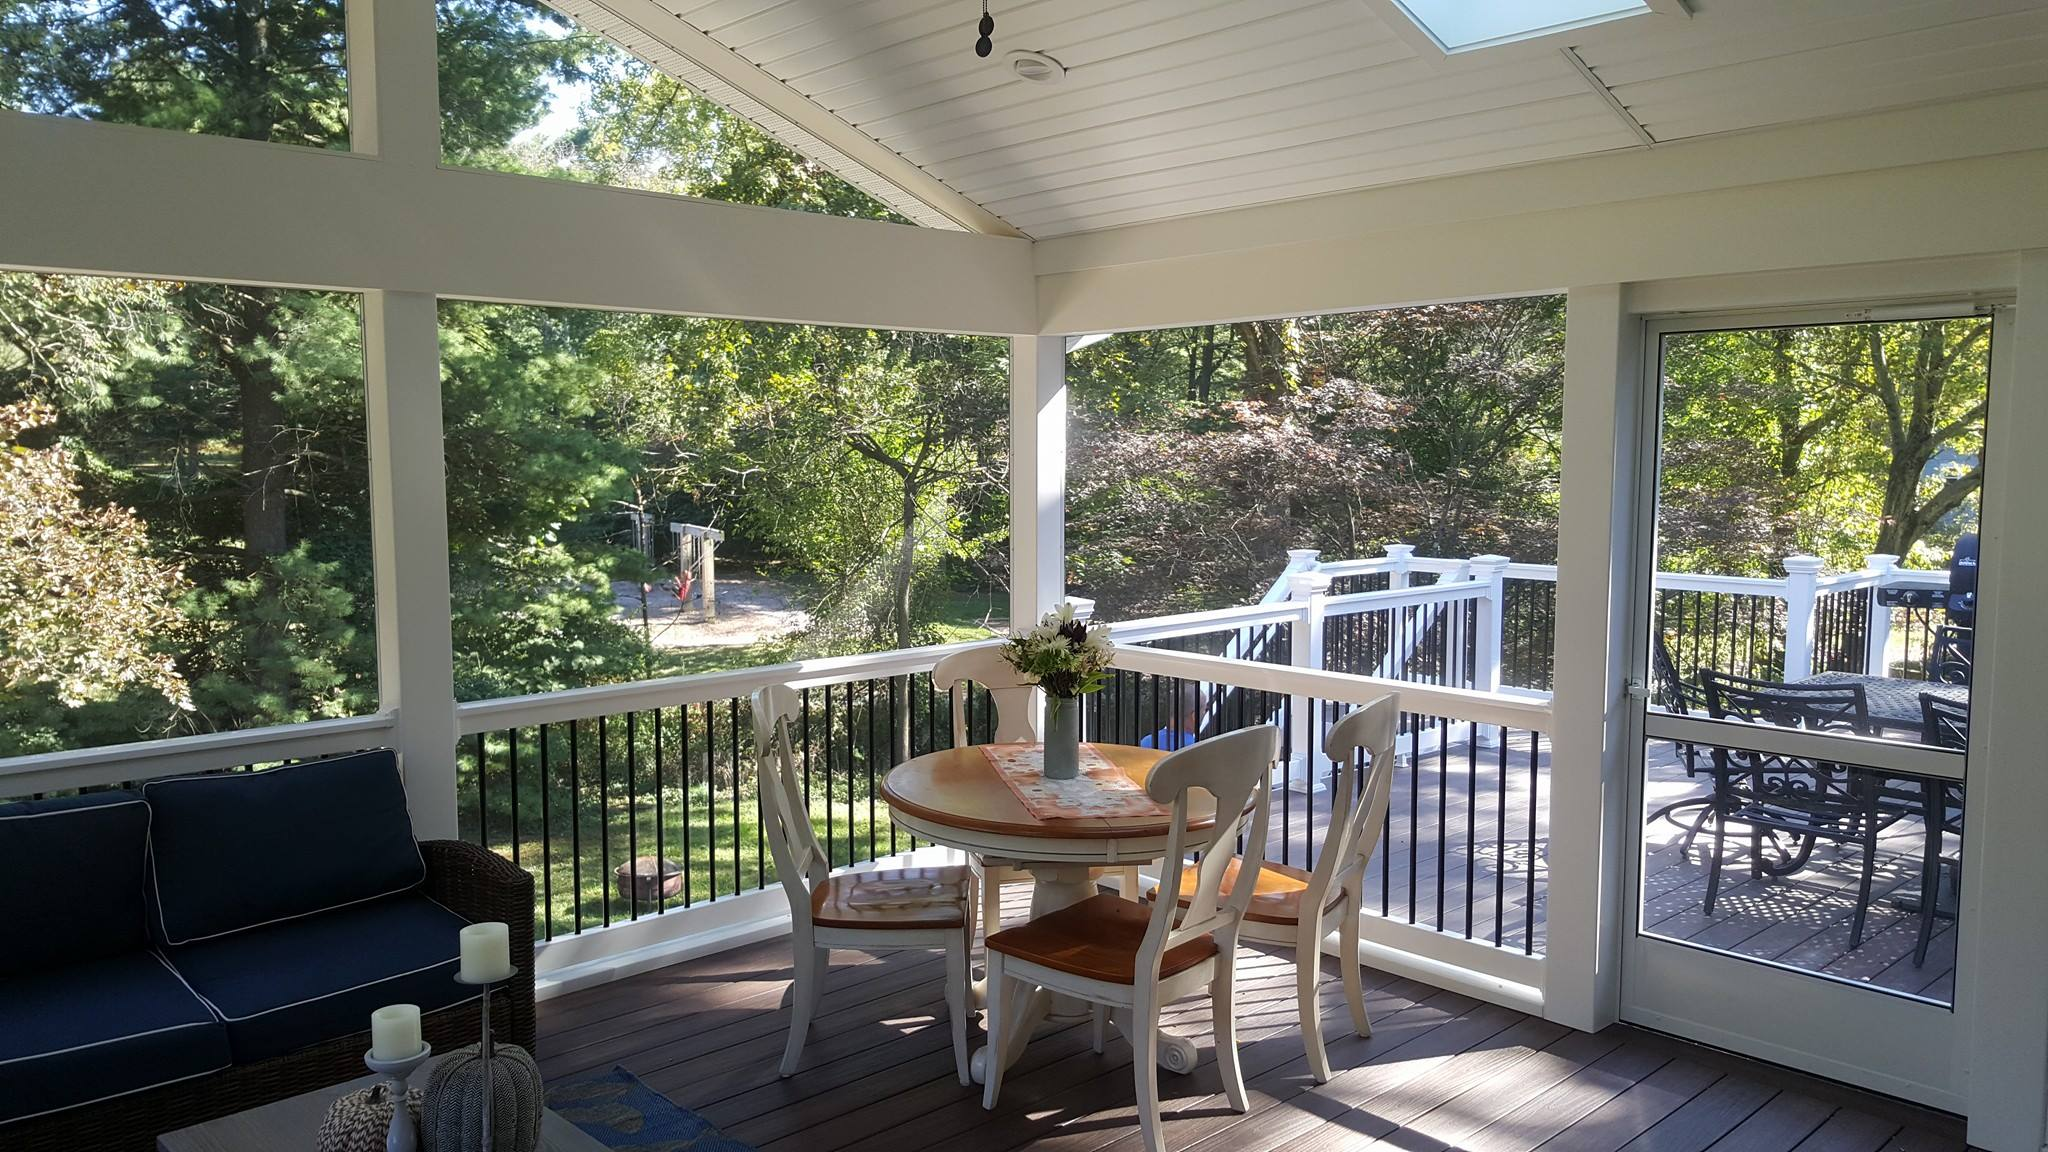 Maryland-Decking-Custom-Screened-Deck-Porch-Builder-8.jpg